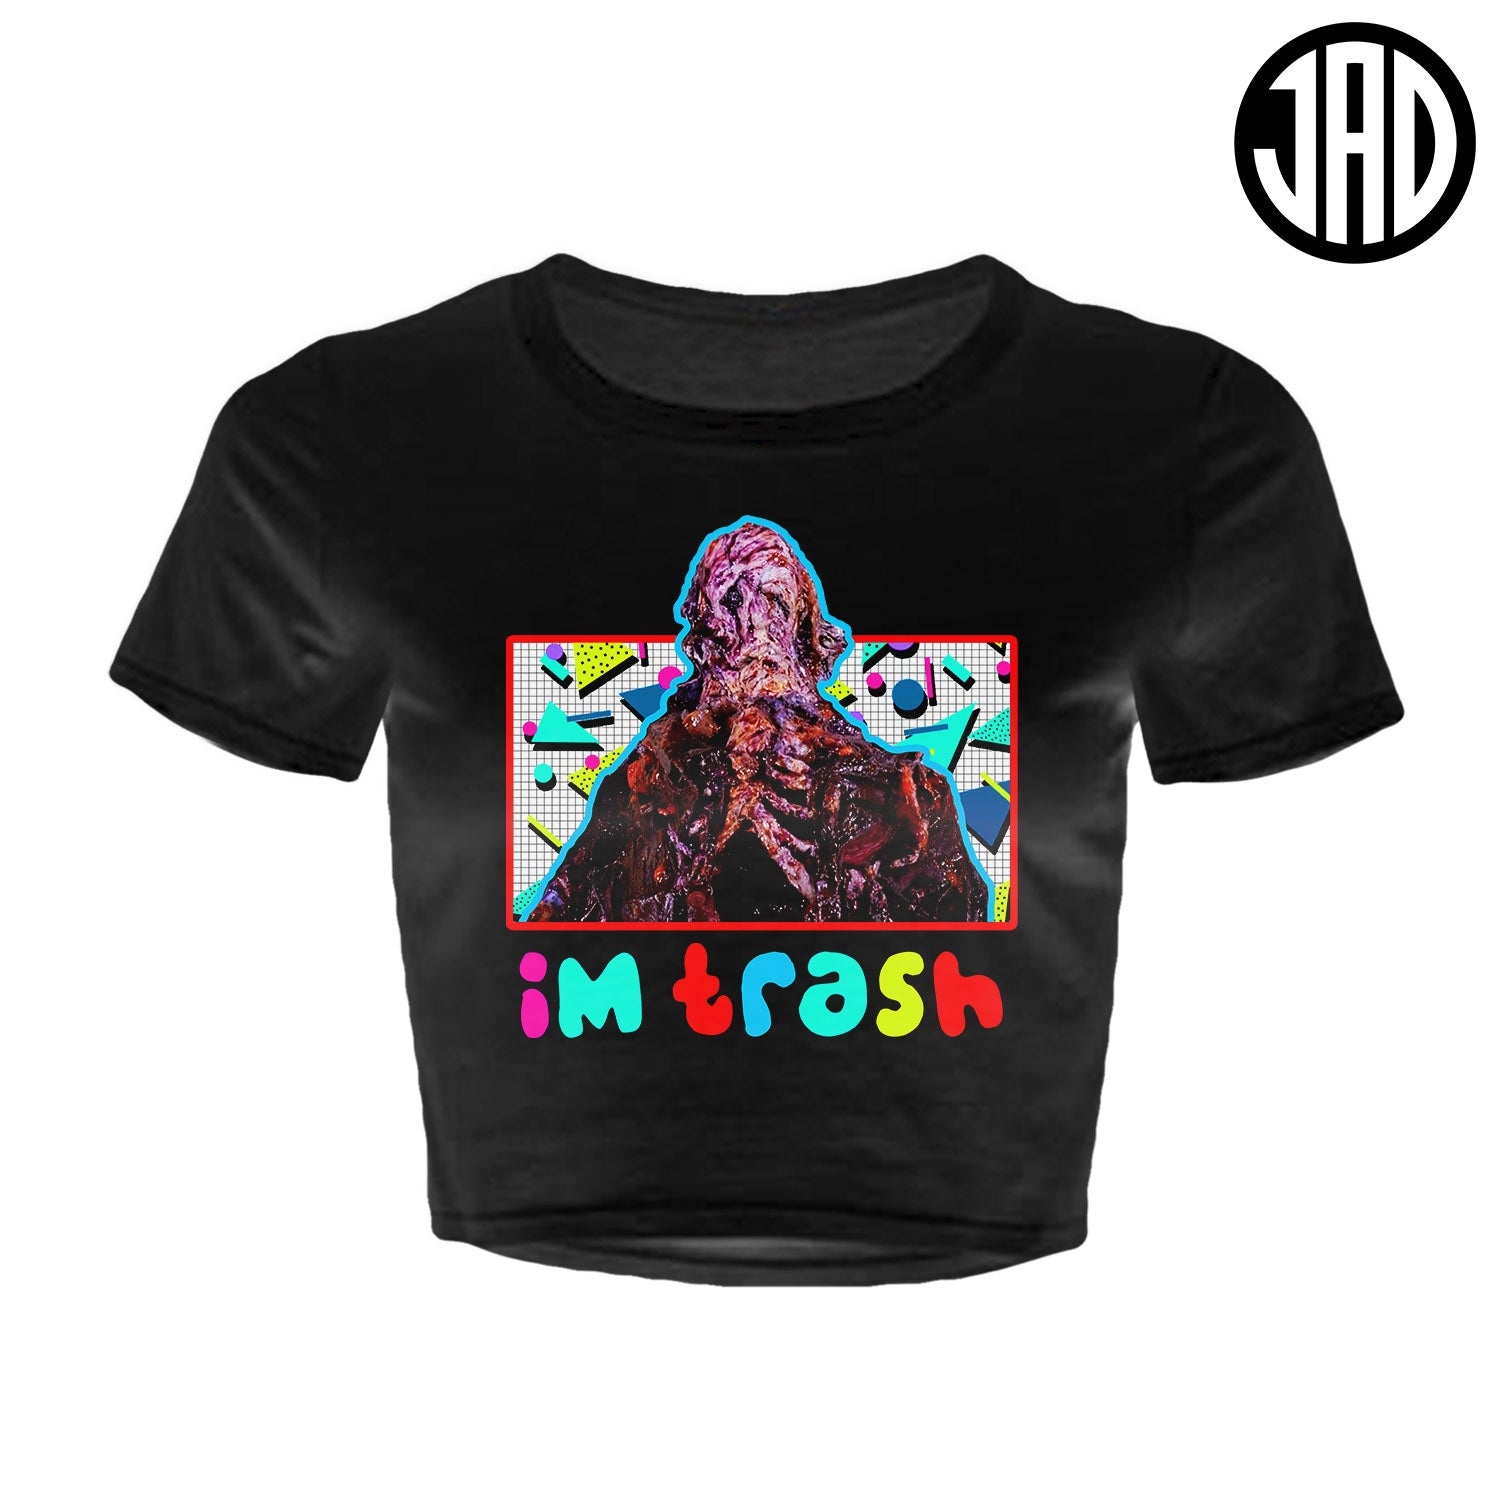 I'm Trash - Women's Crop Top